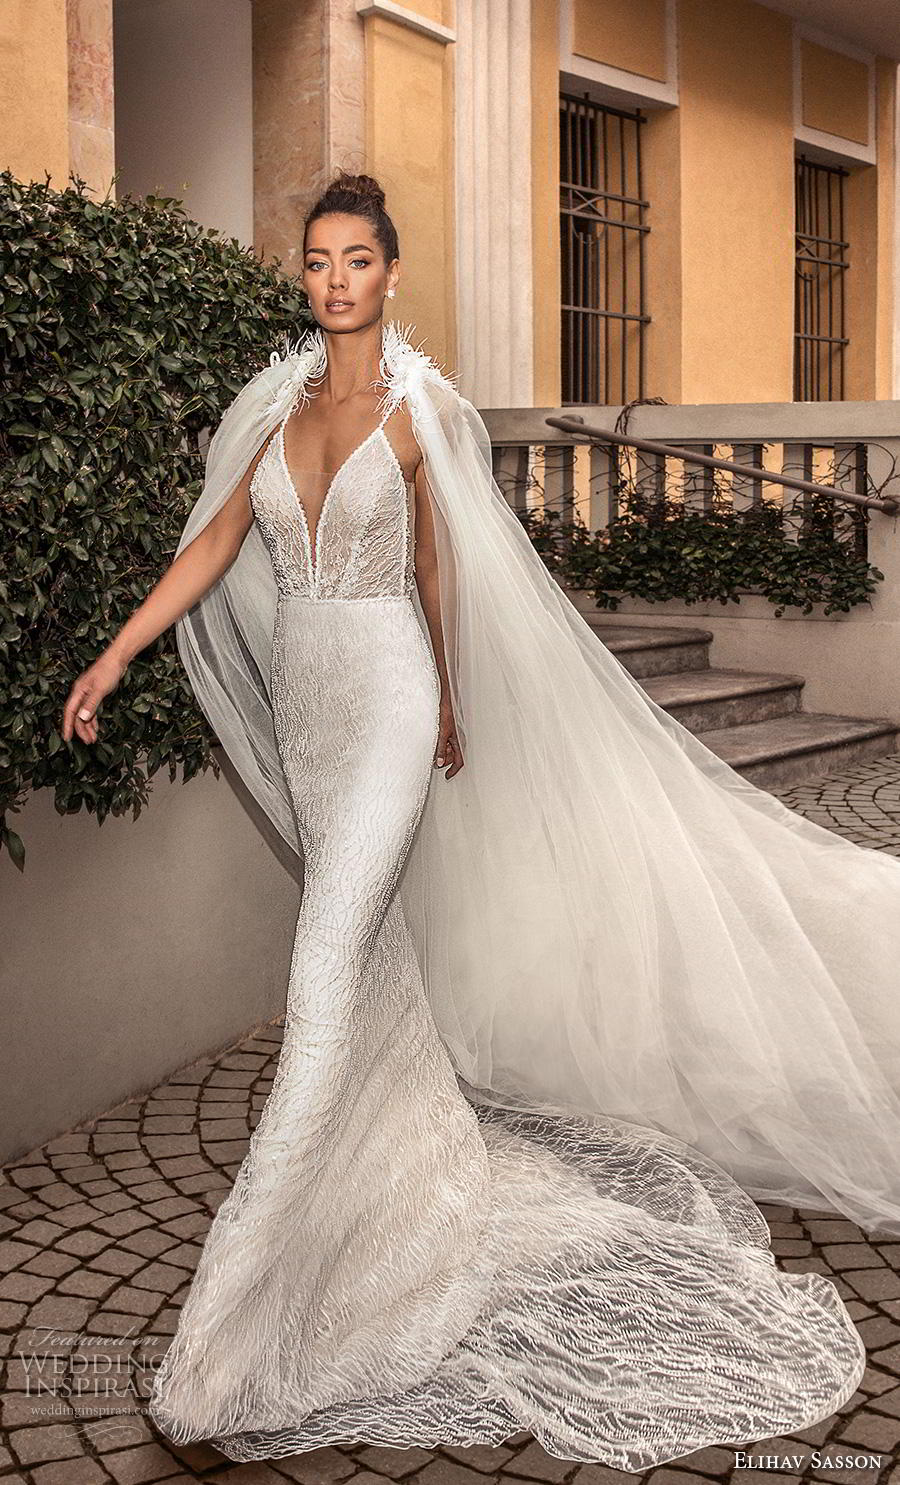 elihav sasson 2019 bridal sleeveless spaghetti strap deep plunging sweetheart neckline full embellishment elegant sexy sheath fit and flare wedding dress chapel train (21) mv